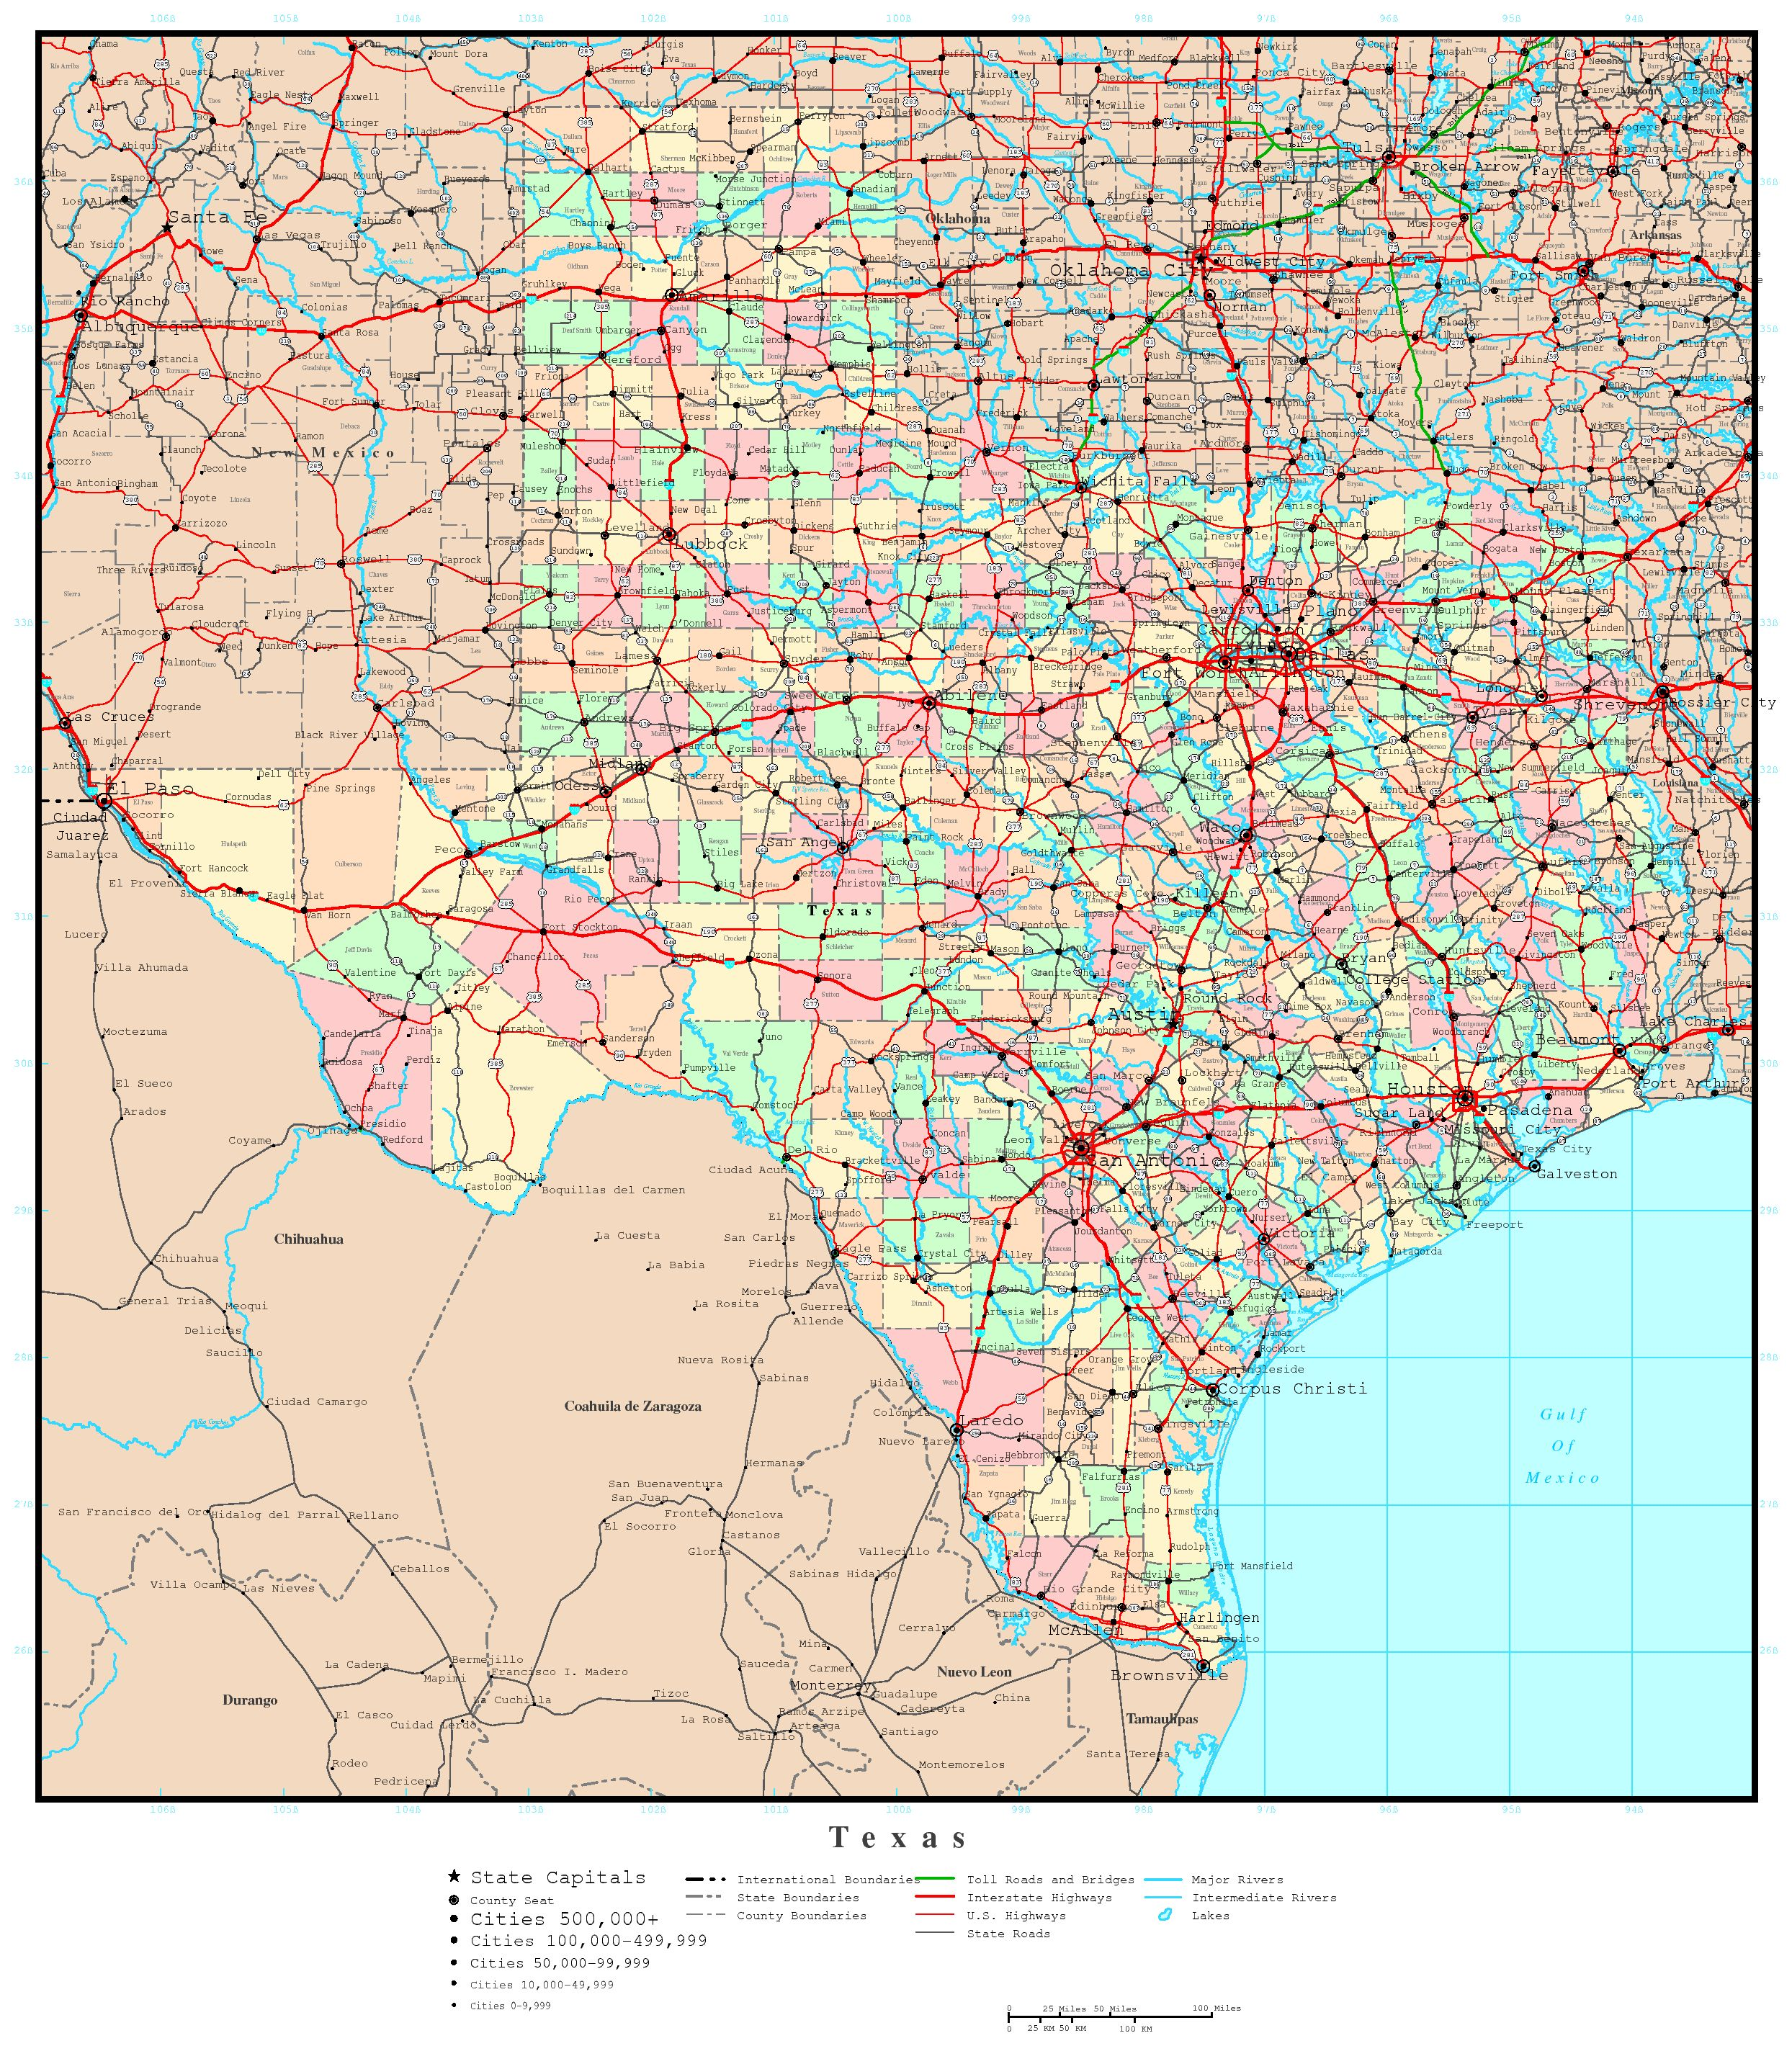 Texas Map Online Maps Of Texas State - Detailed map of texas